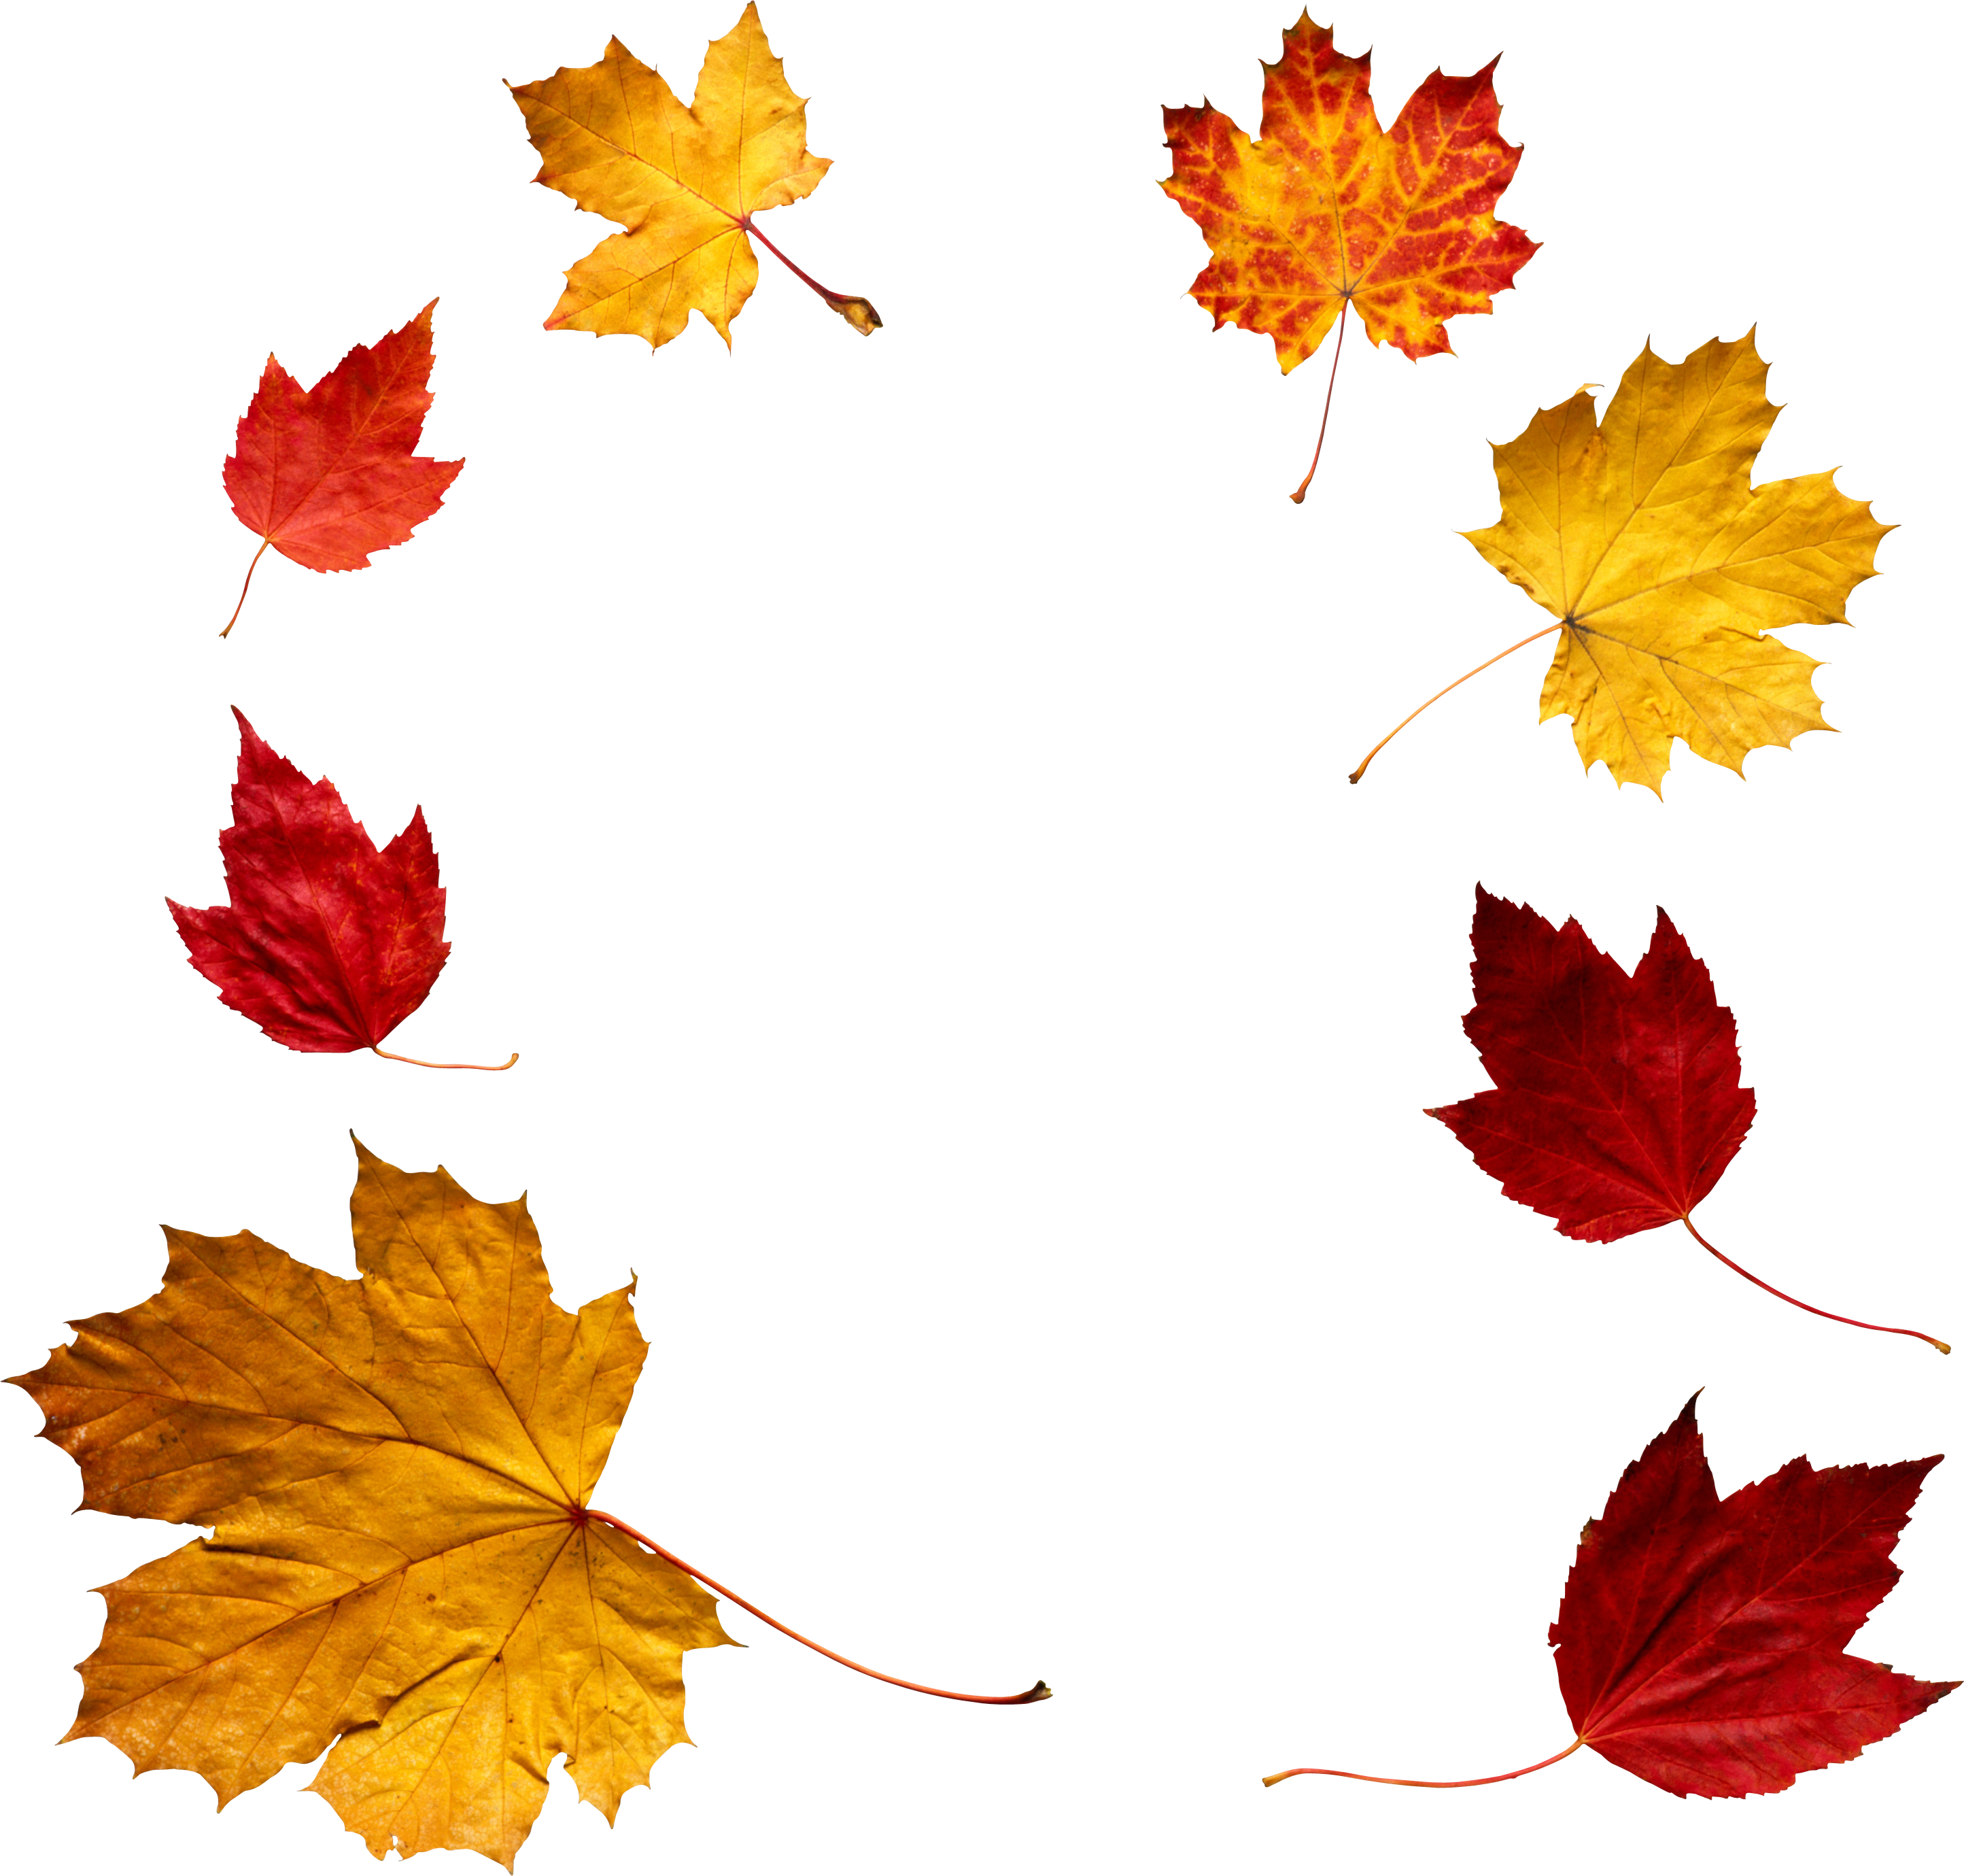 Autumn Leaf Png Image Autumn Leaves Png Png Images